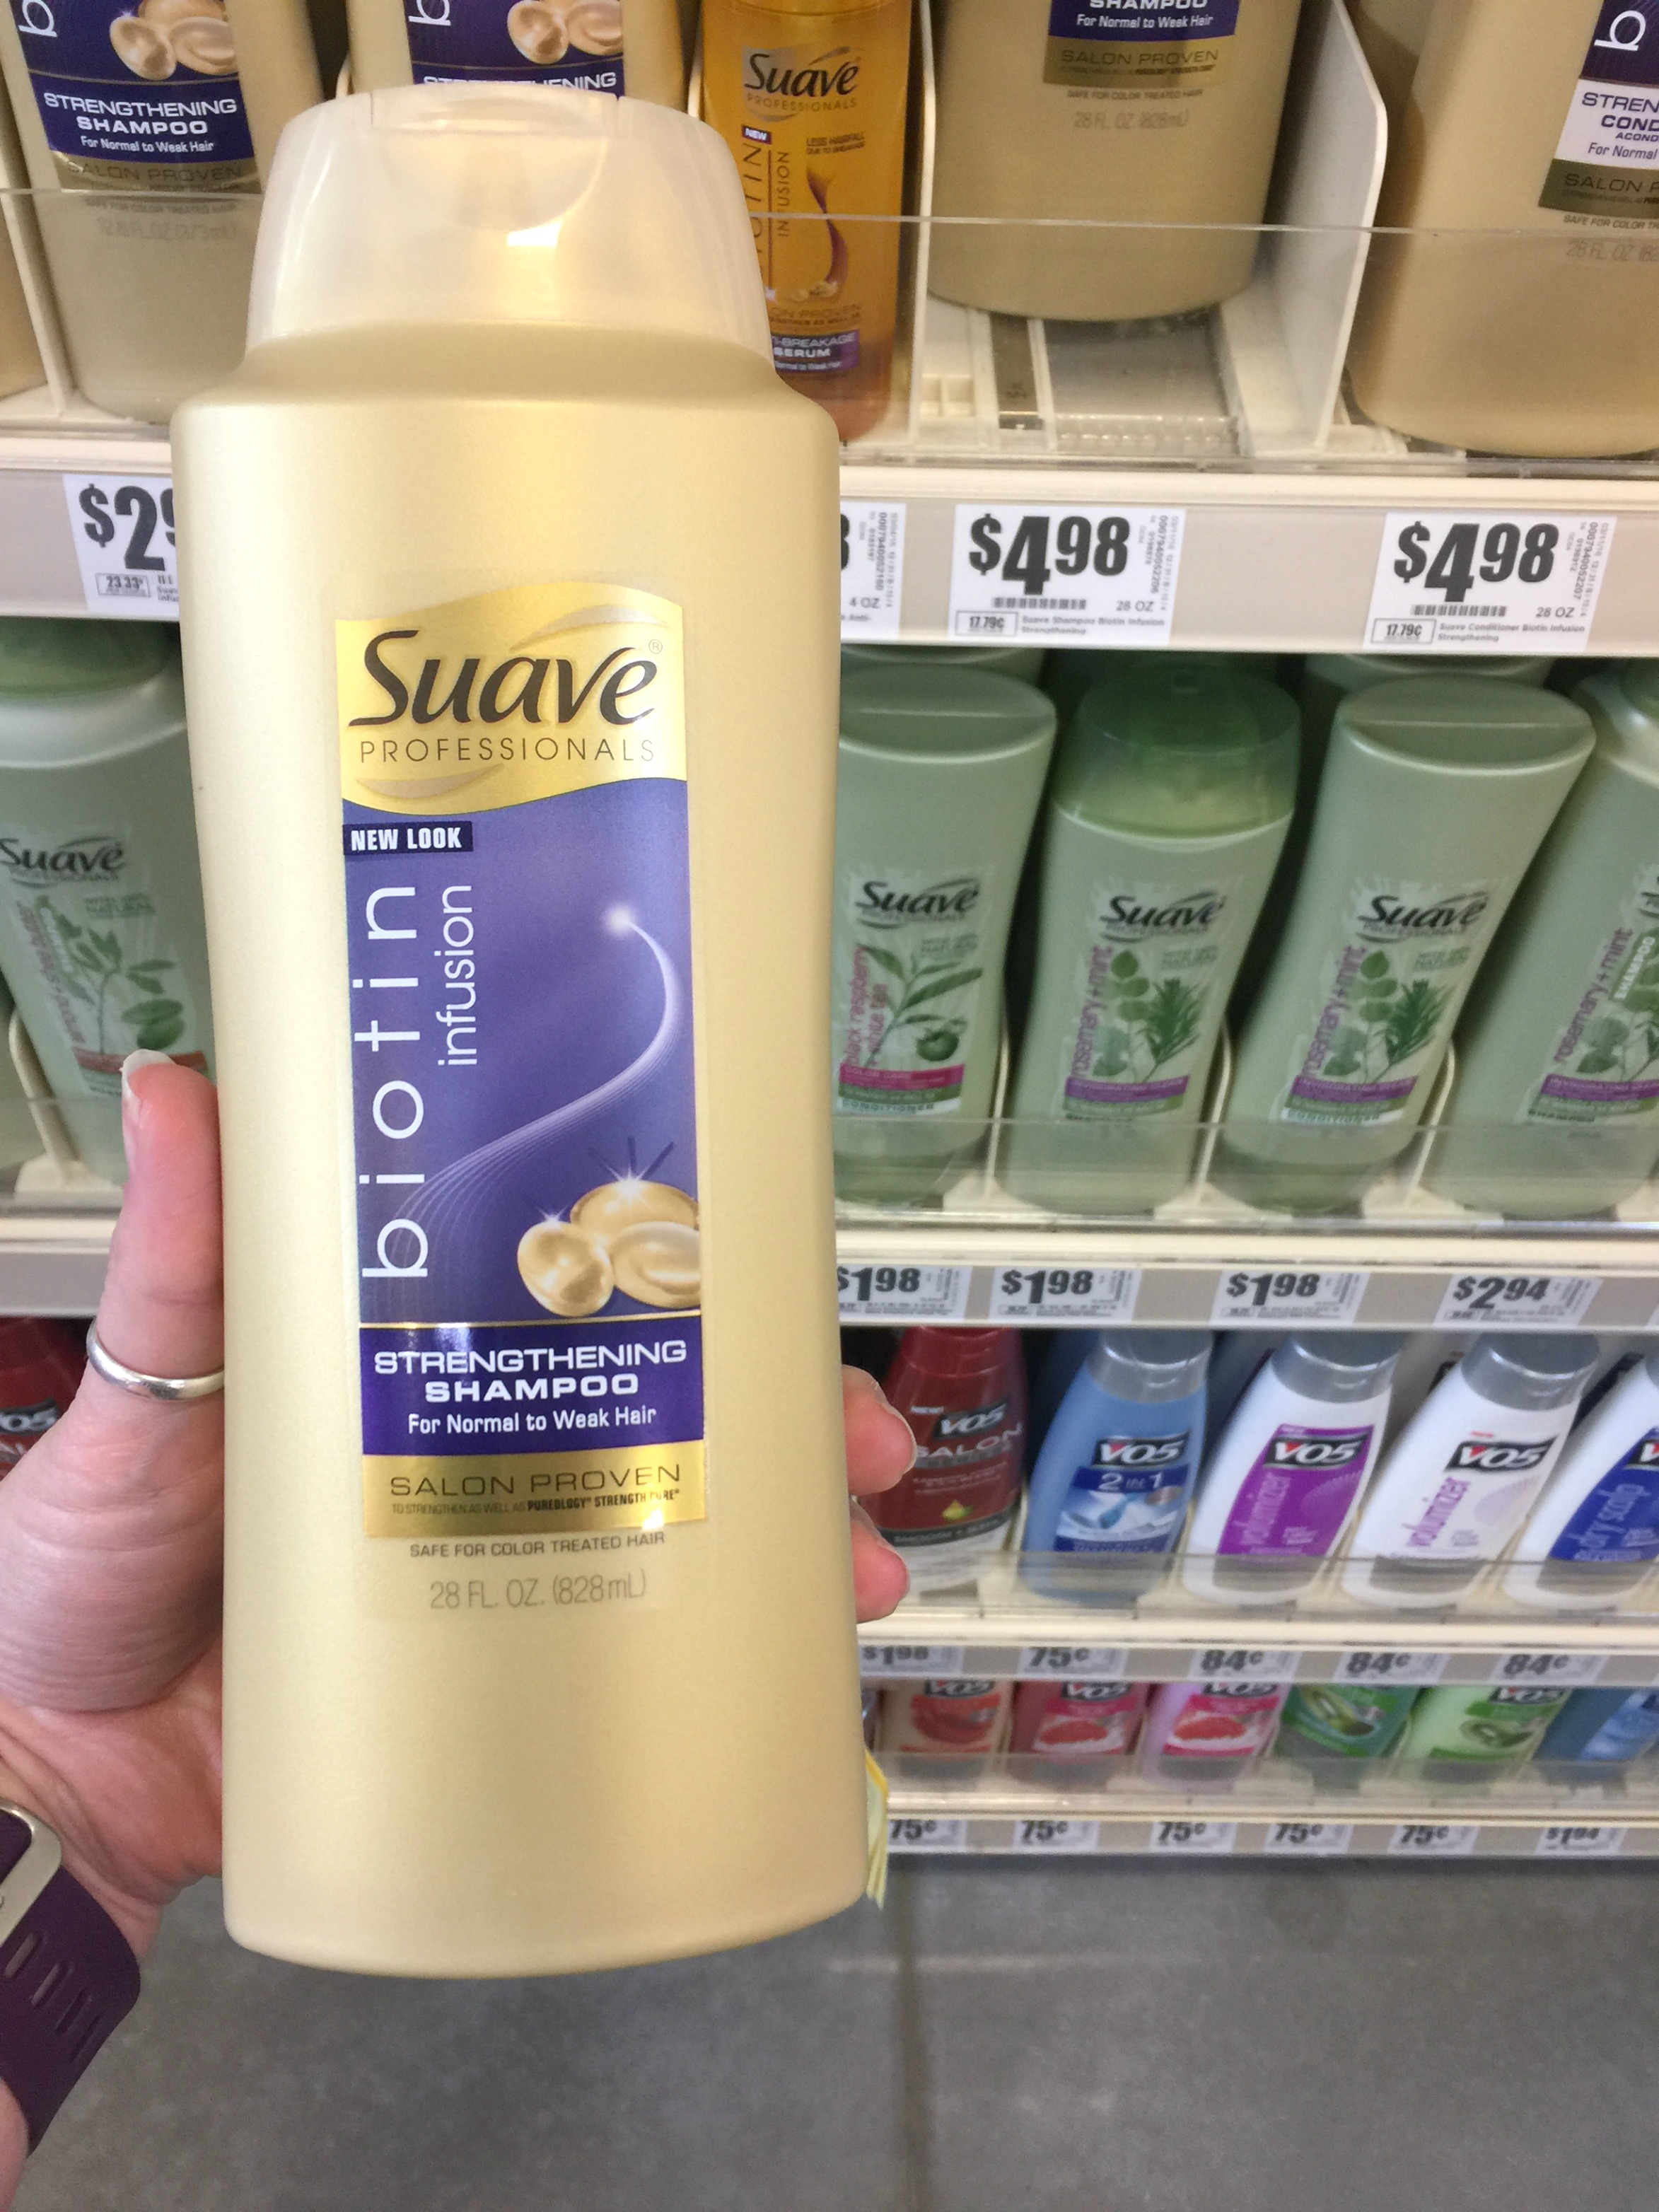 Spark Hair Envy by knowing which products to use for your hair needs and wants. Try taking the Suave Hair Quiz to see which products are right for you.